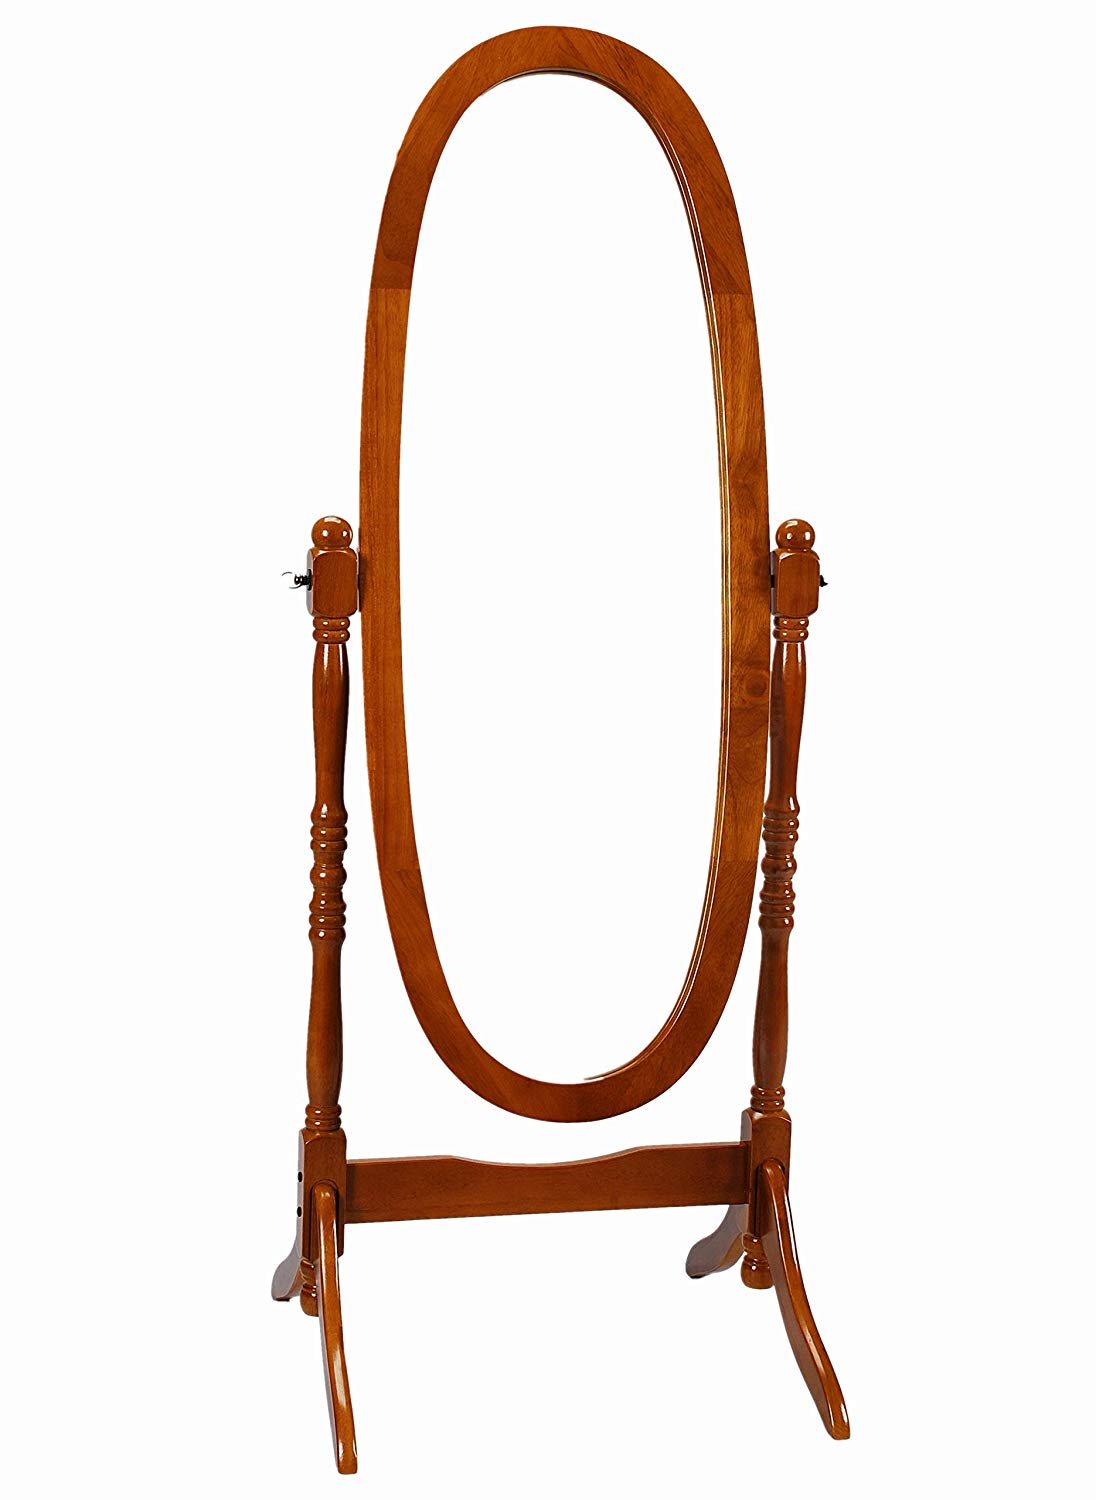 Frenchi-Home-Furnishing-Oak-Cheval-Mirror-Adjustable-Full-length-Oval-Mirror